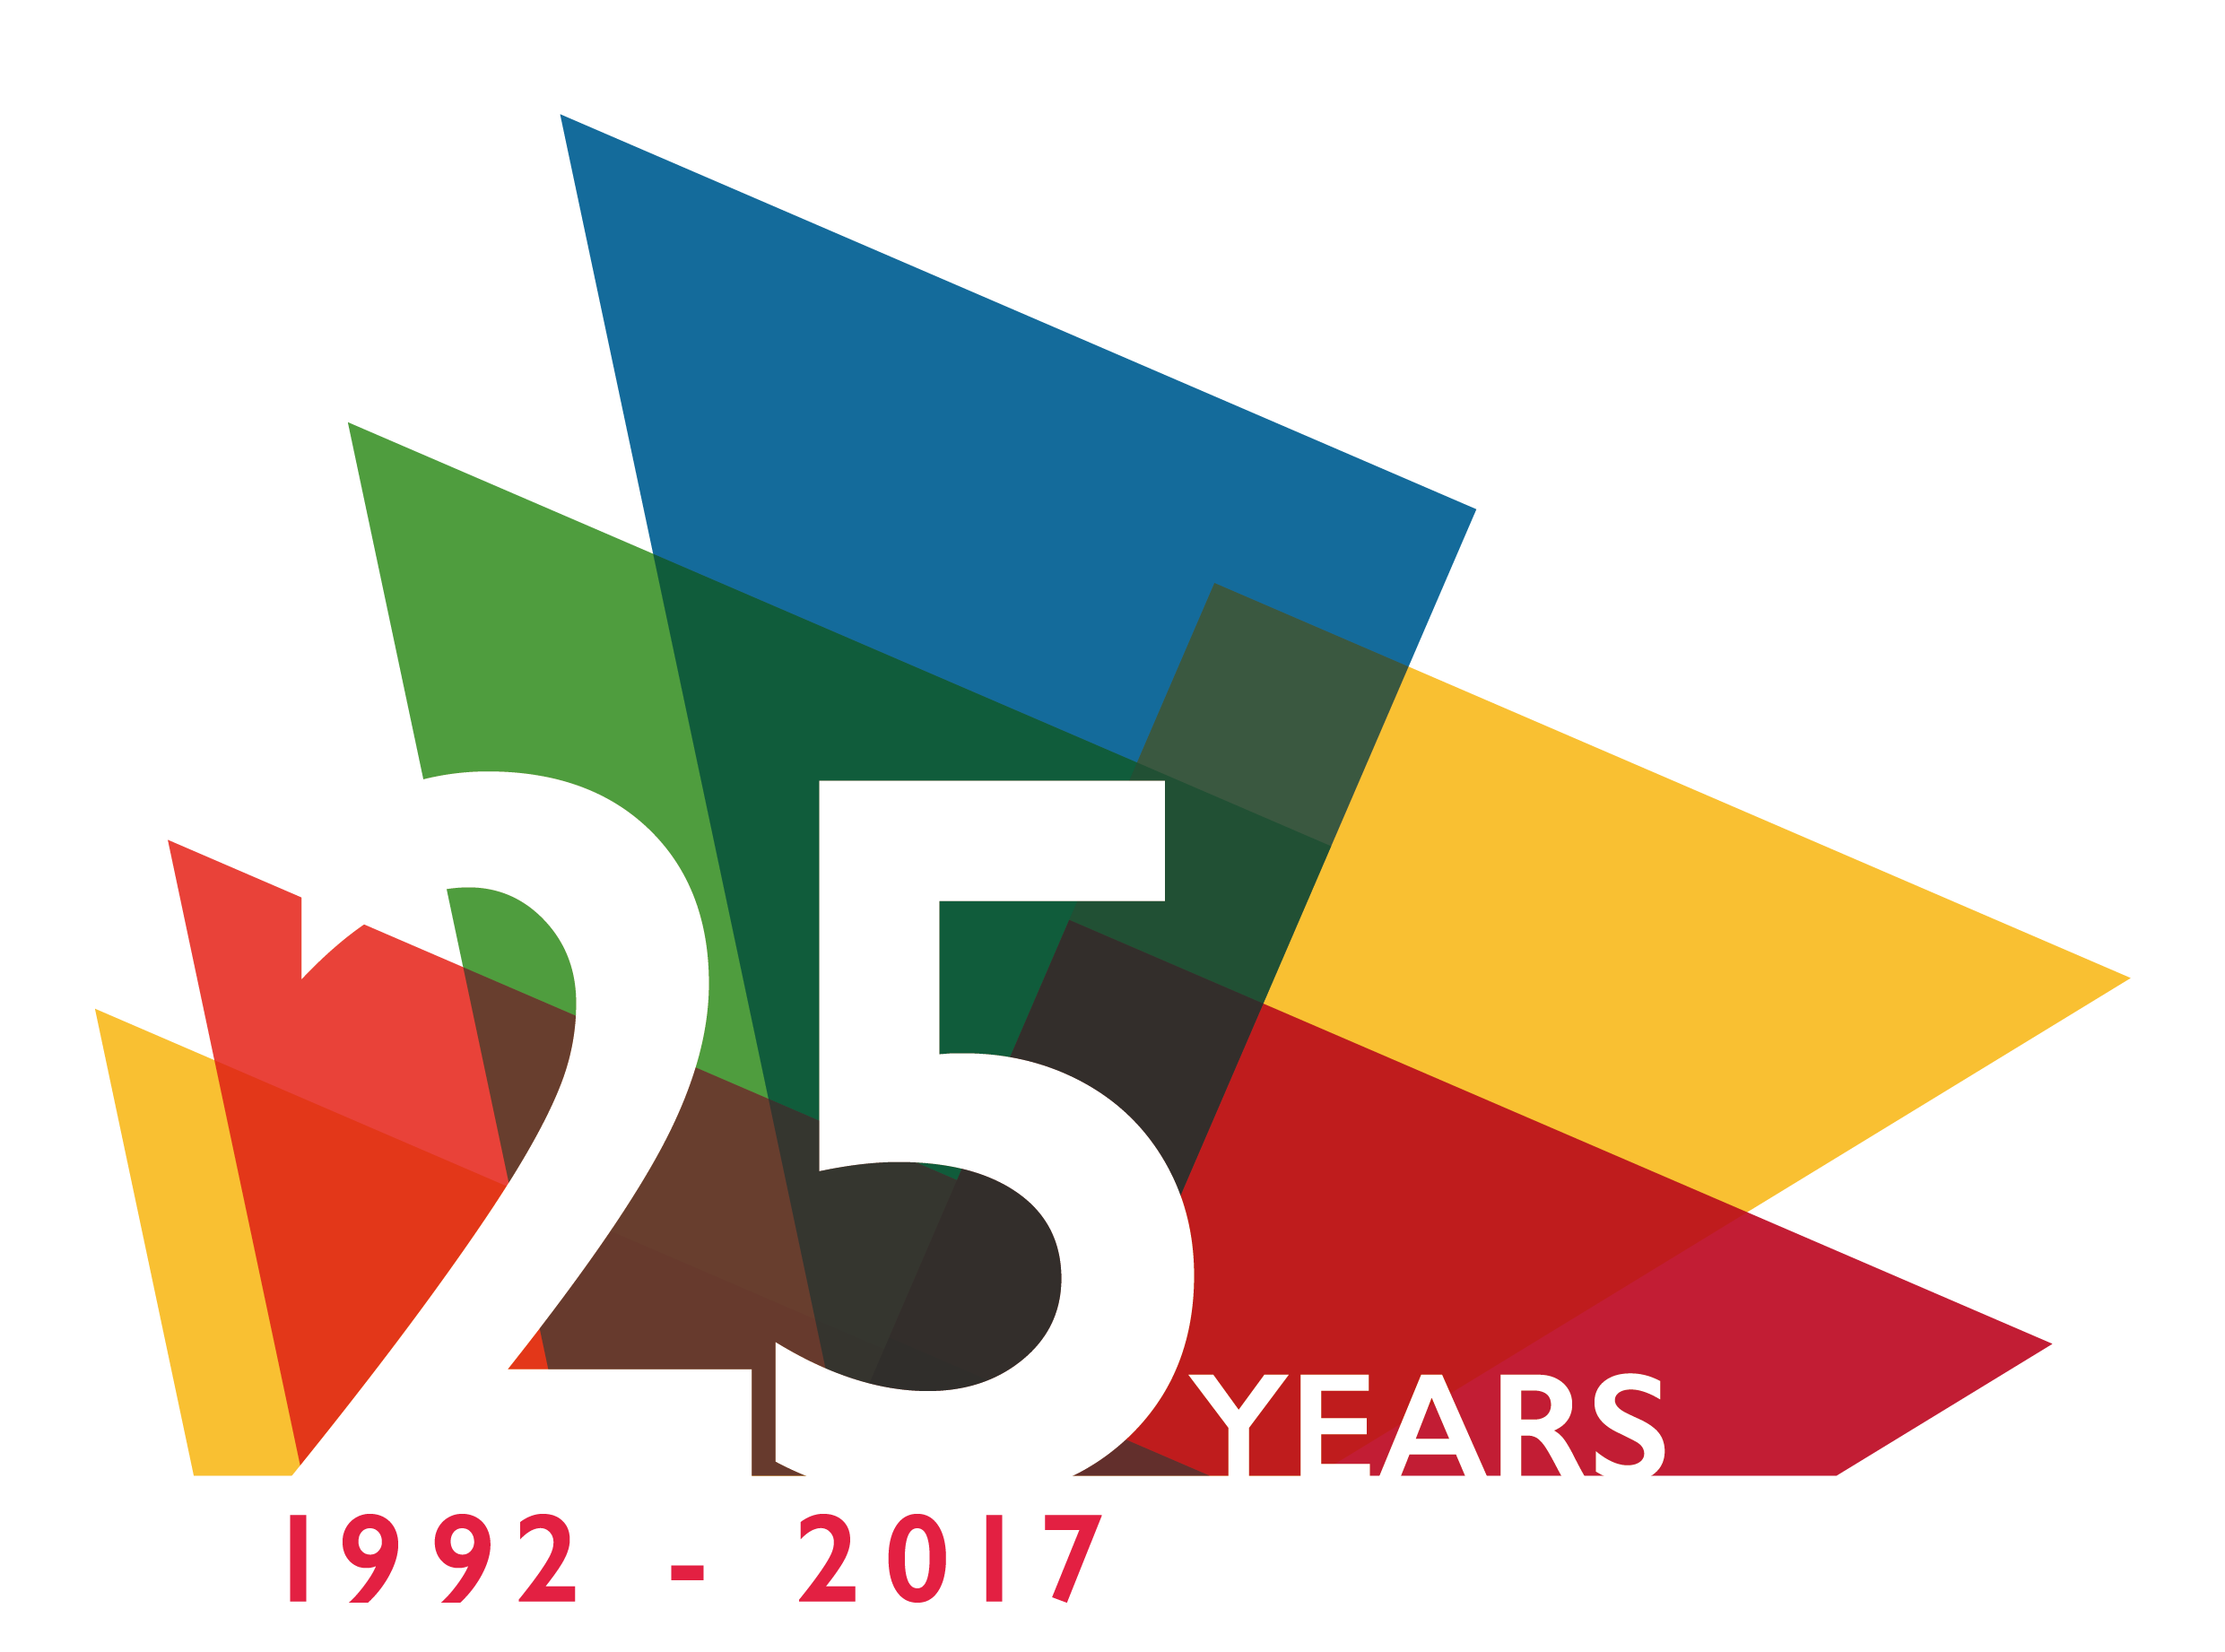 25 years logo png 8 » PNG Image.